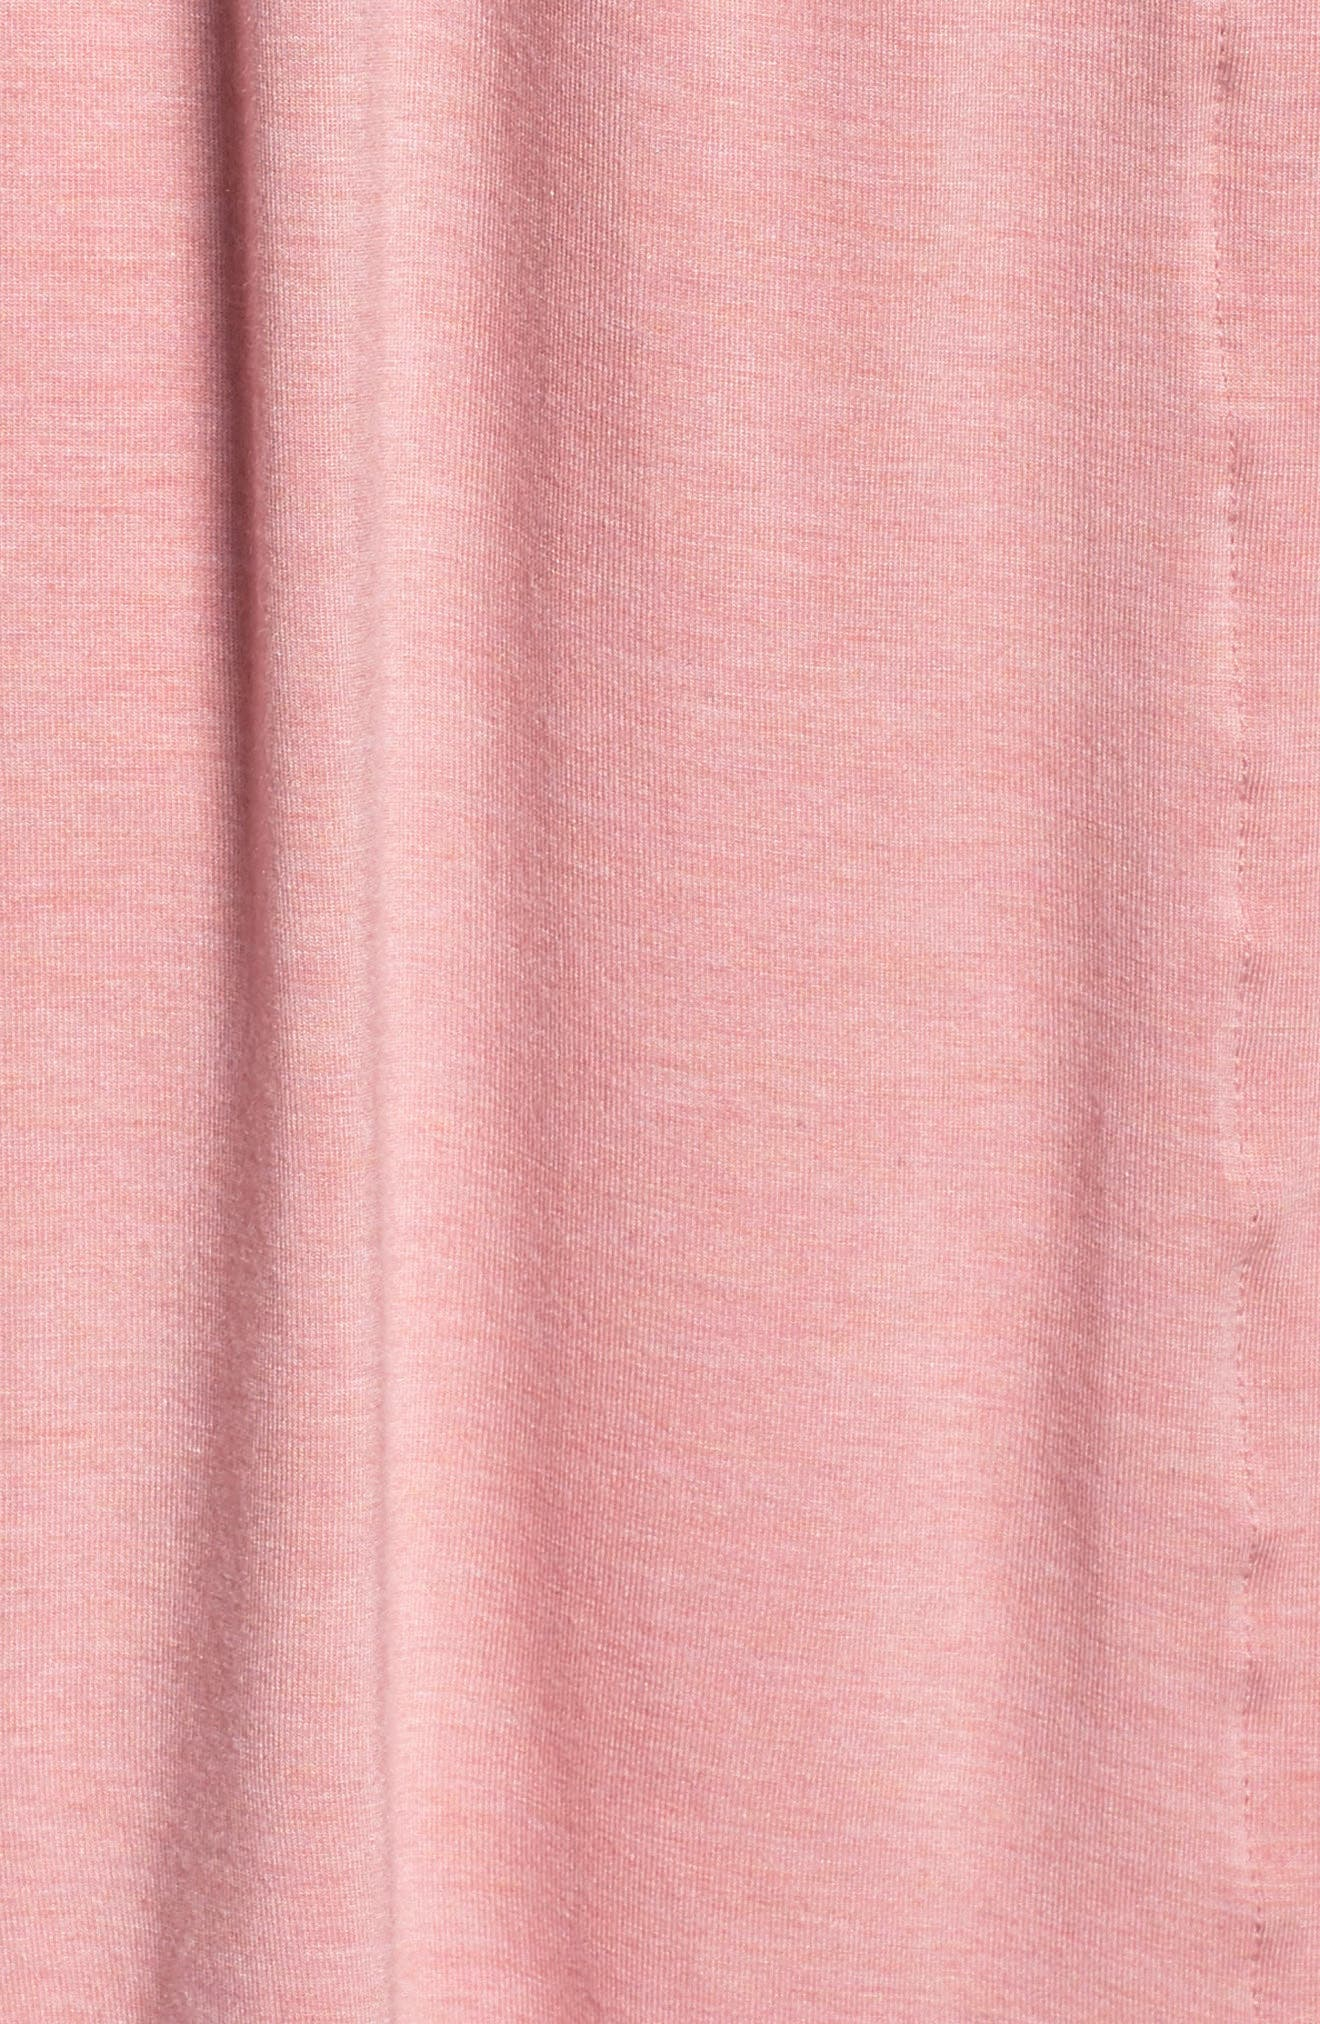 Short Robe,                             Alternate thumbnail 5, color,                             VINTAGE PINK